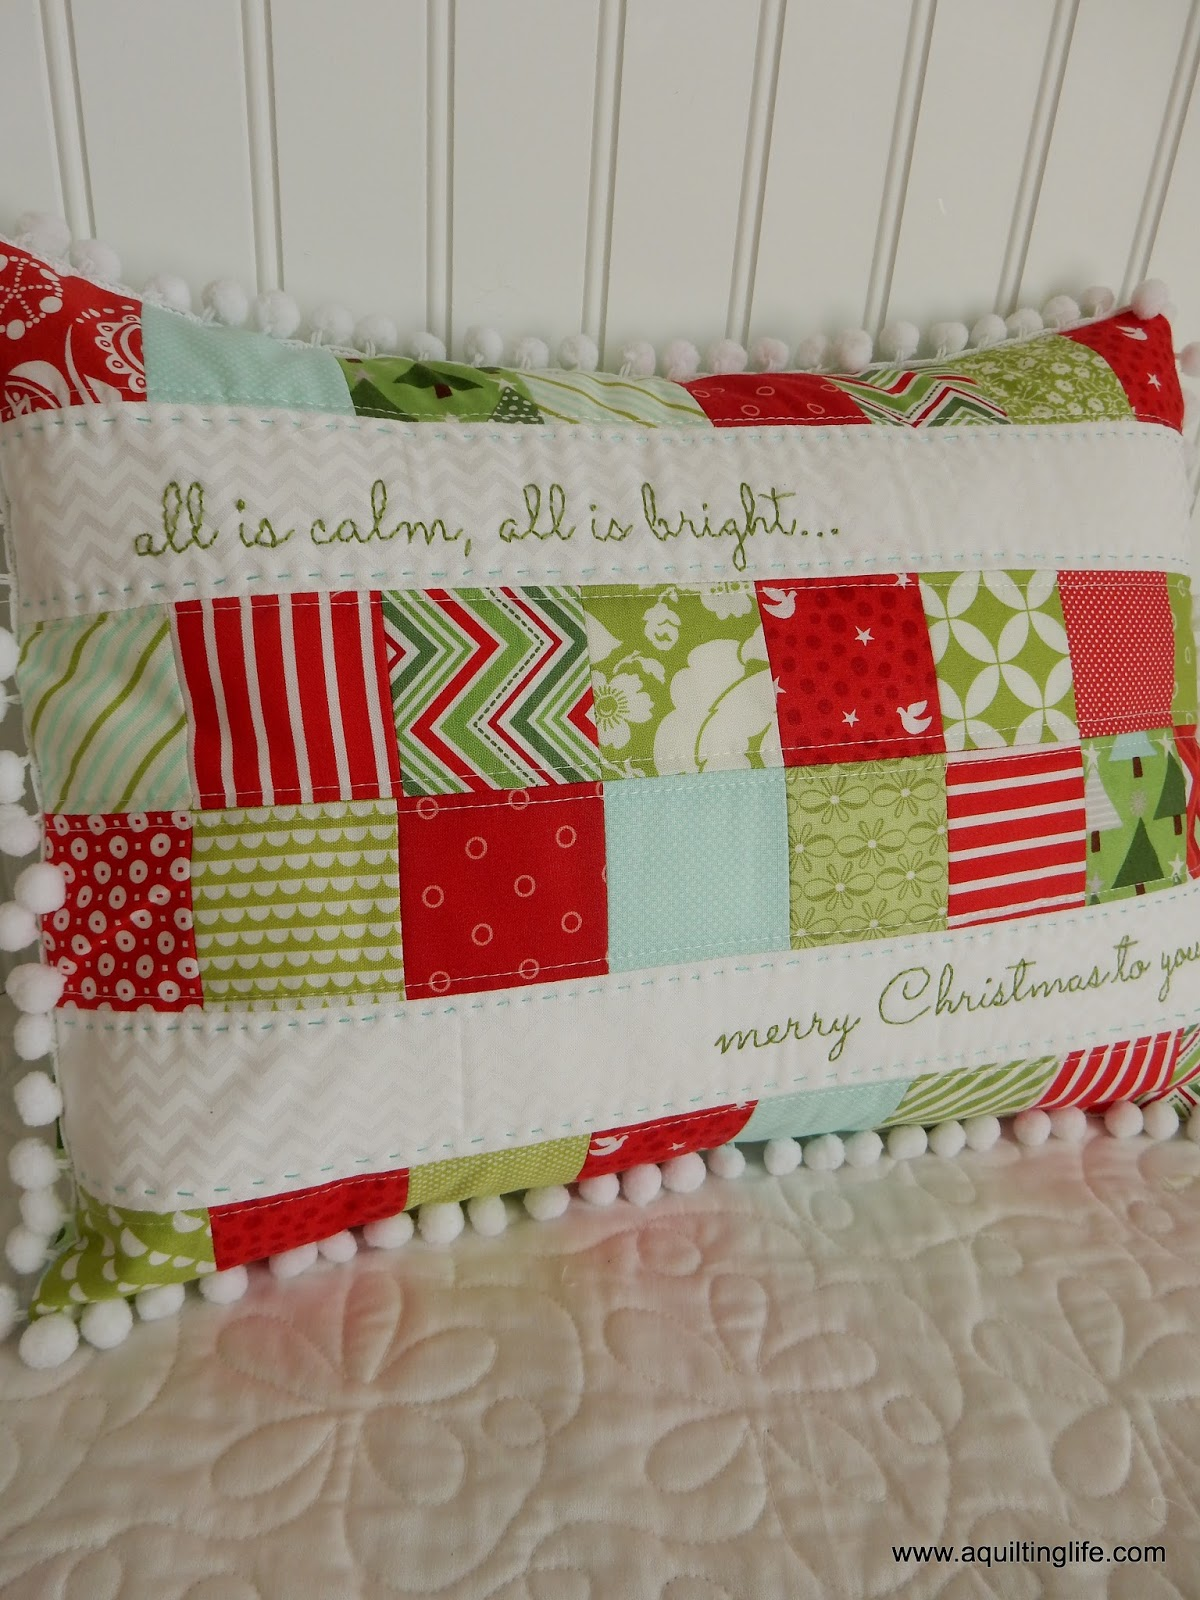 Then just recently Amy of Nana Company (the designer) published her pattern as a free PDF...I knew I had to make it...for this Christmas! & Merry Christmas Patchwork Pillow | A Quilting Life - a quilt blog pillowsntoast.com